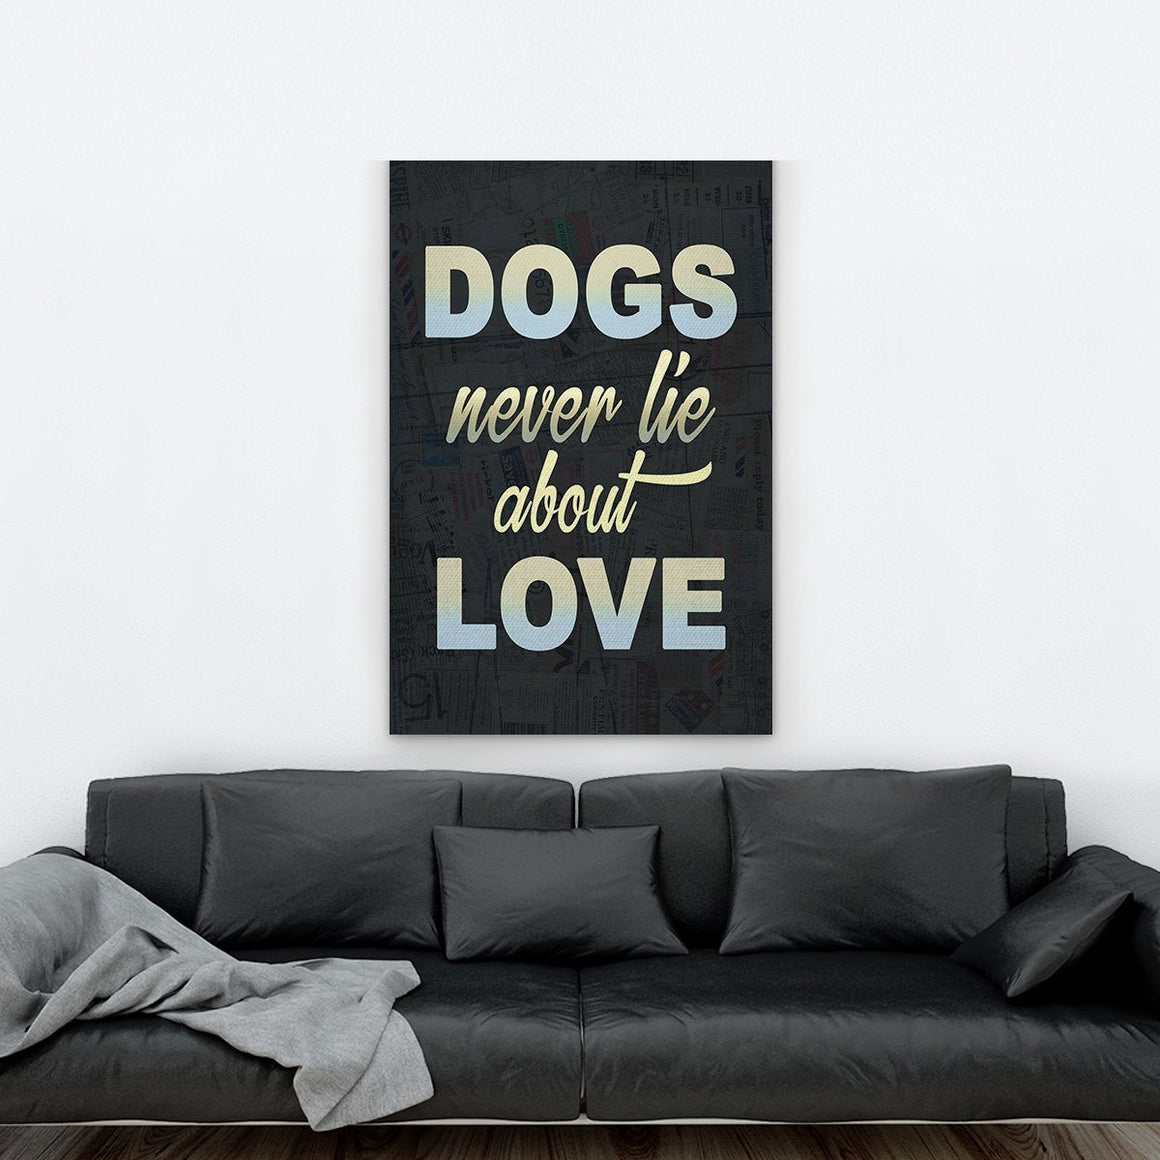 Dogs Love Canvas - ONLINEPRESALES